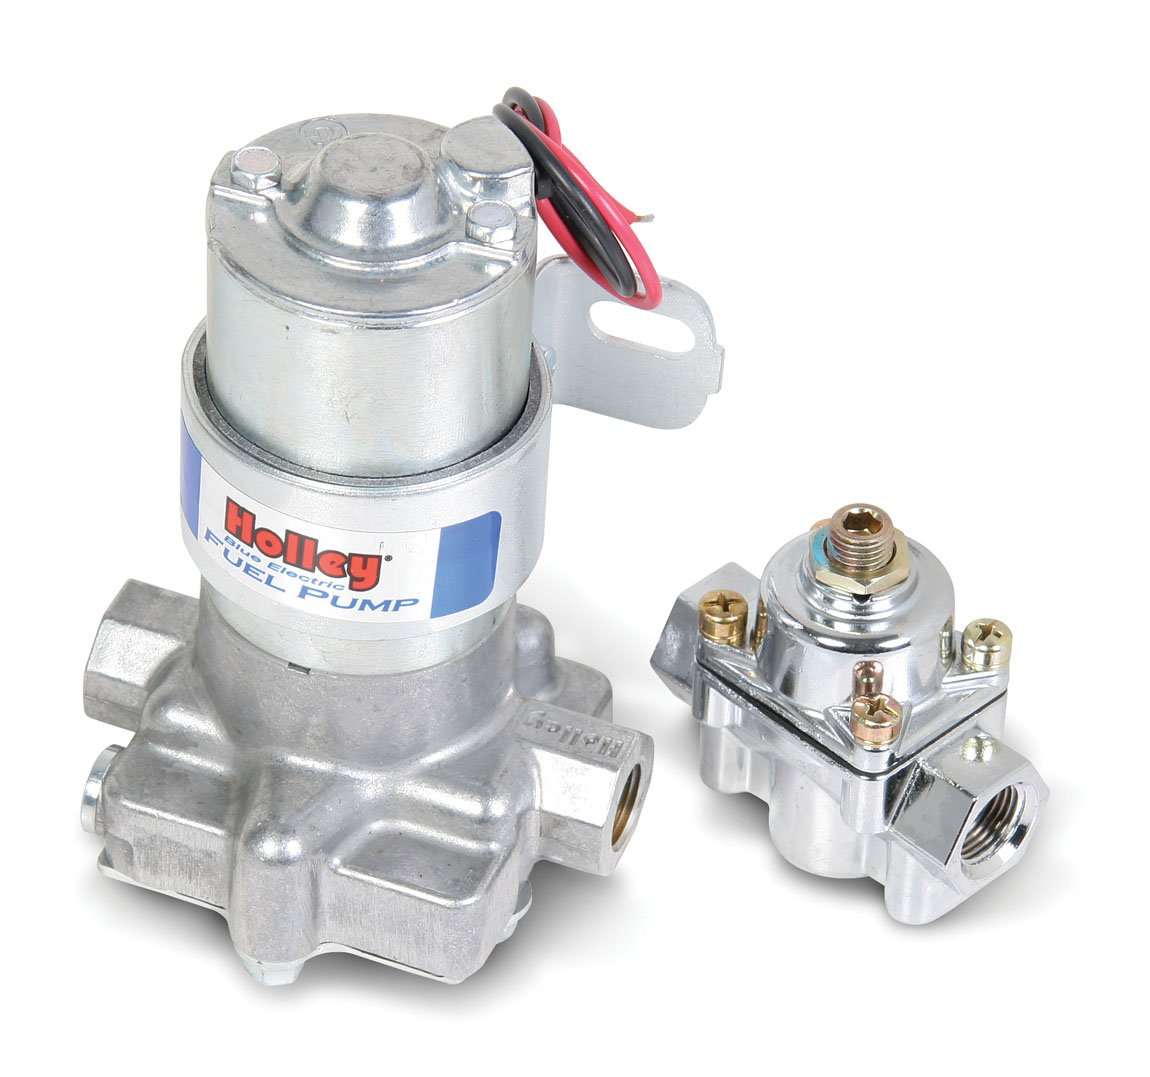 hight resolution of 12 802 1 110 gph blue electric fuel pump with regulator image